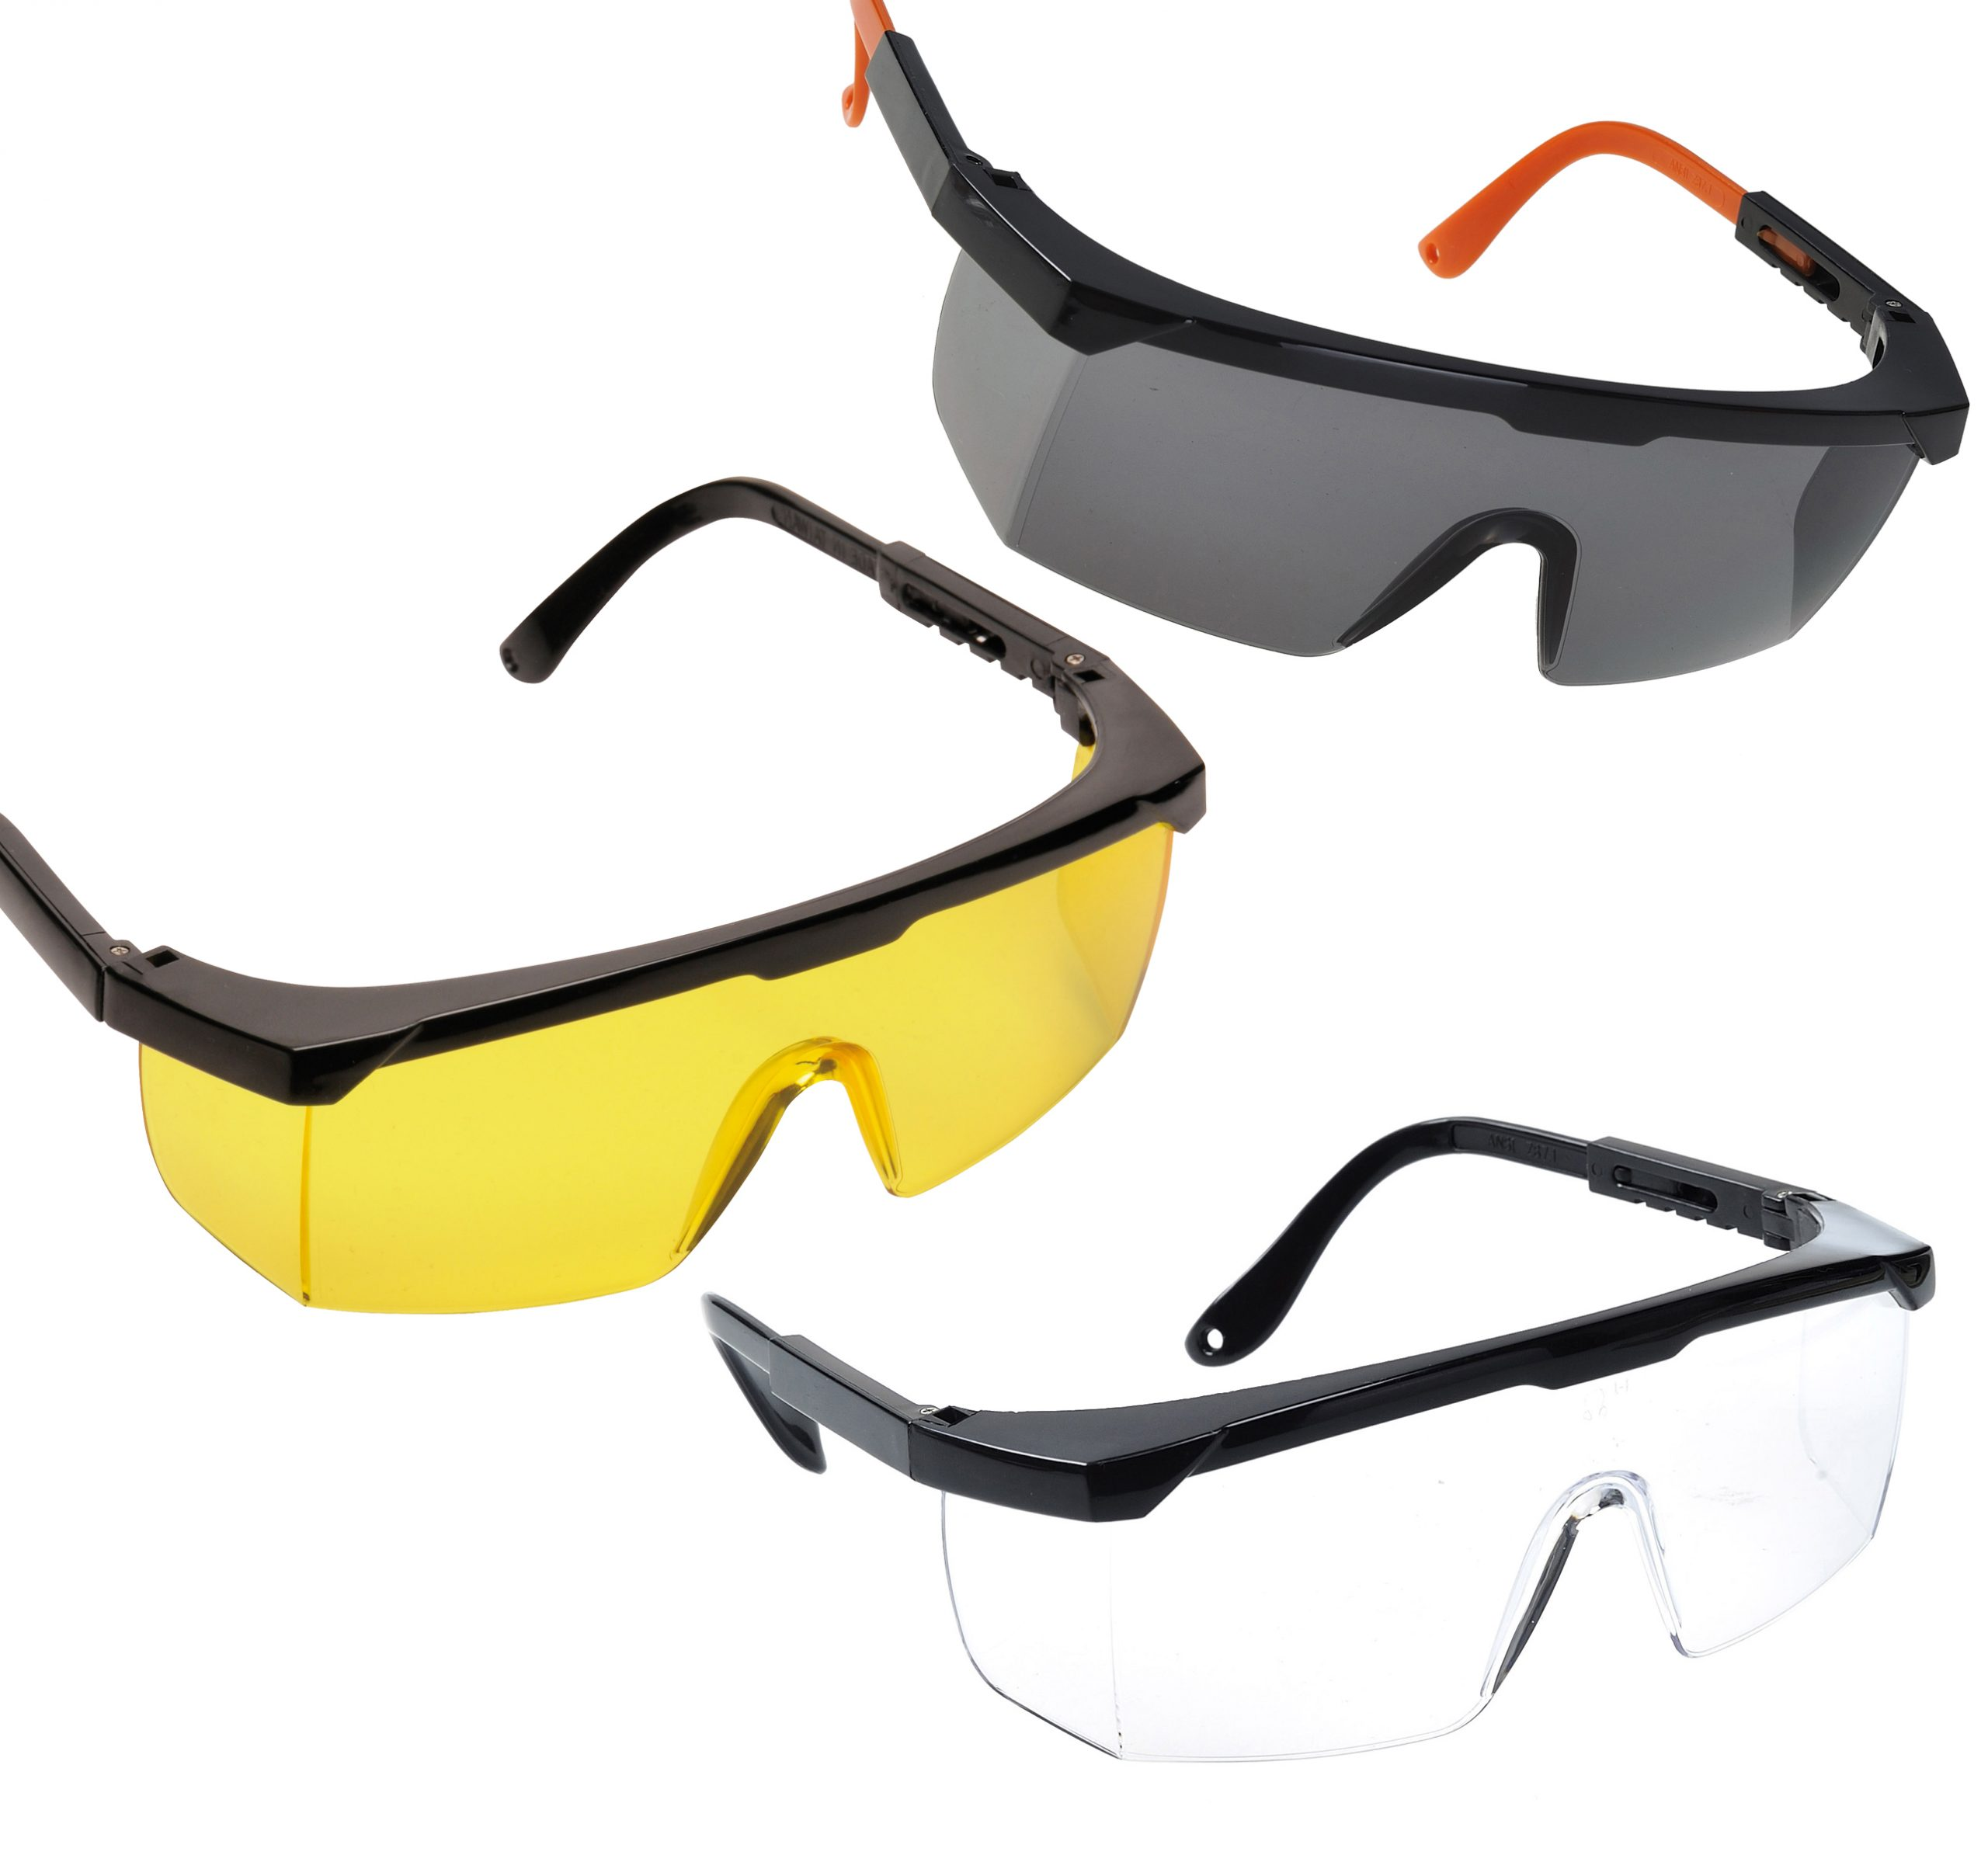 Cord inc Portwest PW33 Classic Safety Glasses Single panoramic lens Adjustable